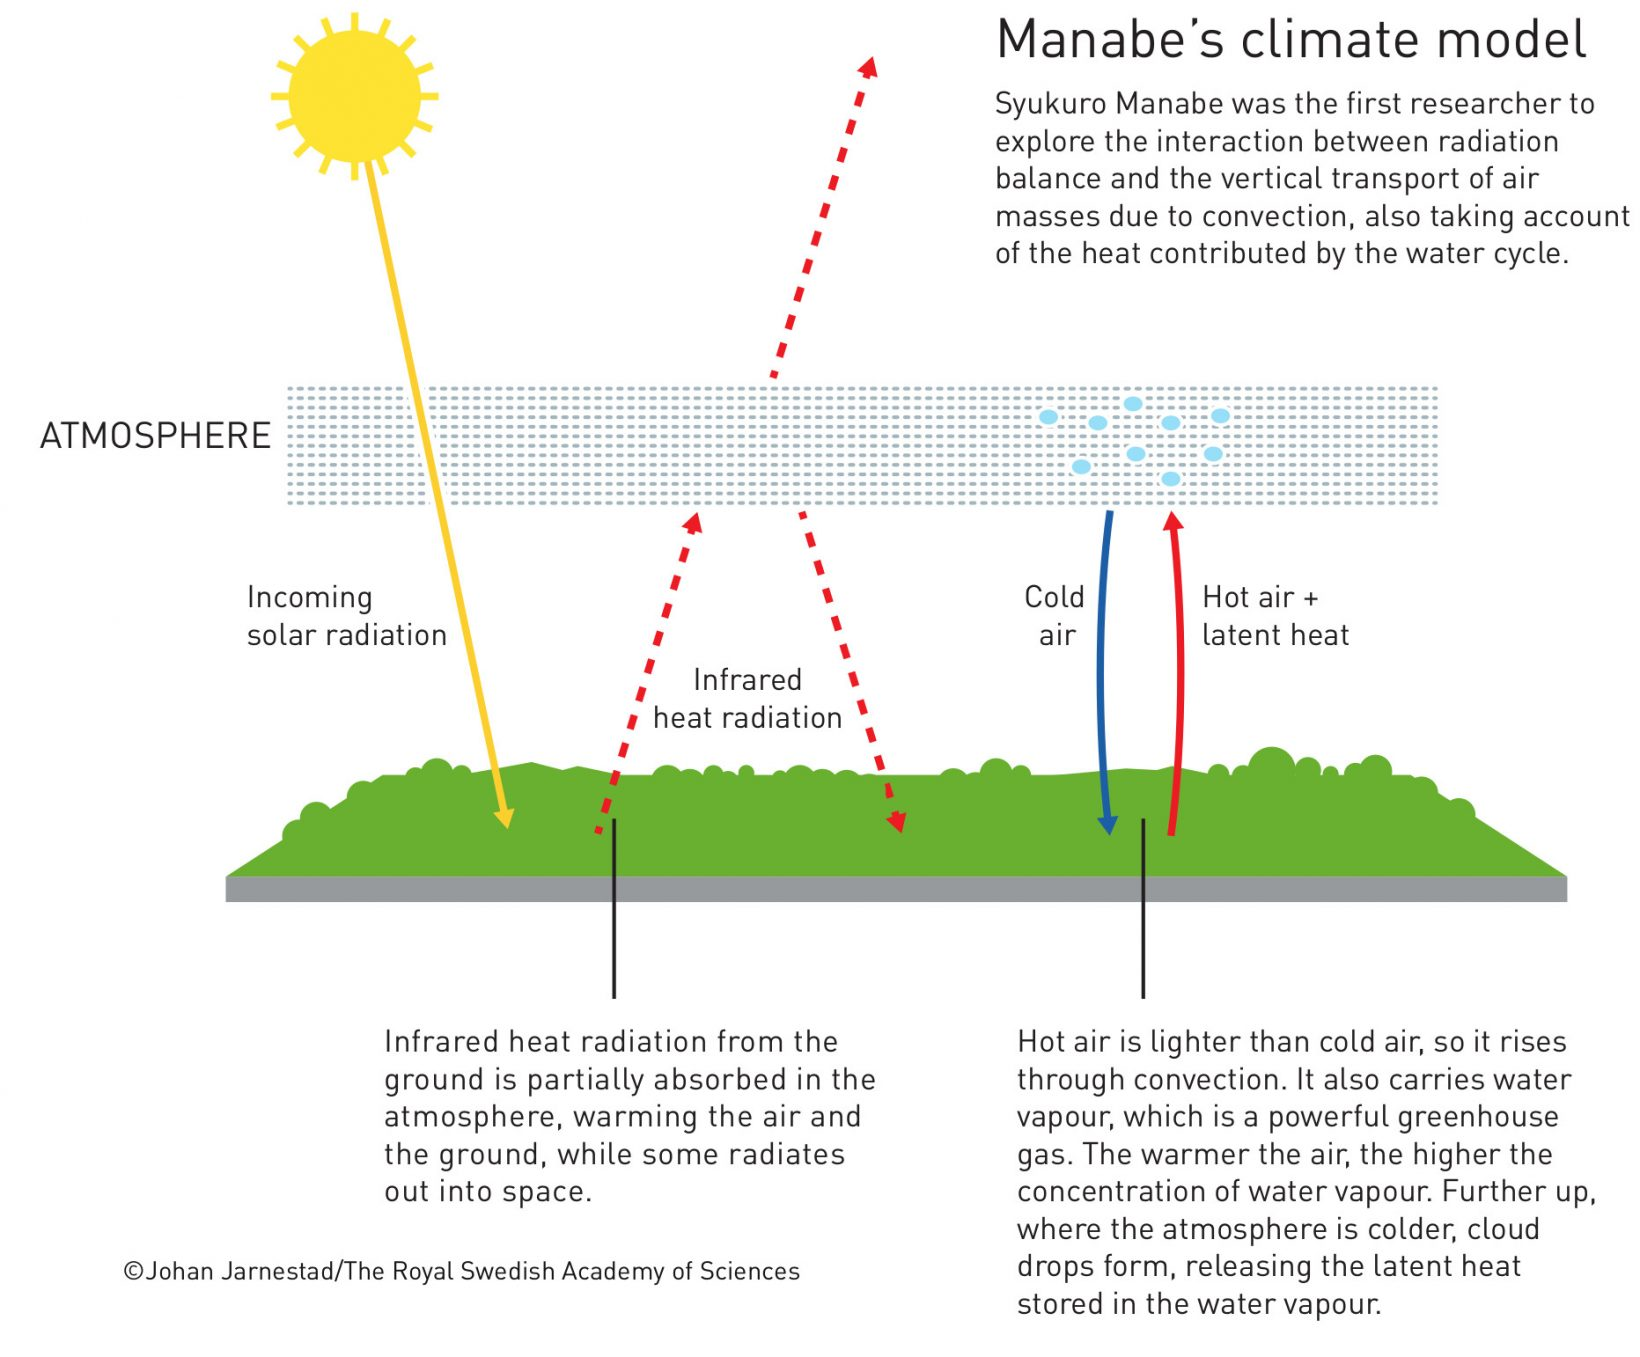 Manabe climate model